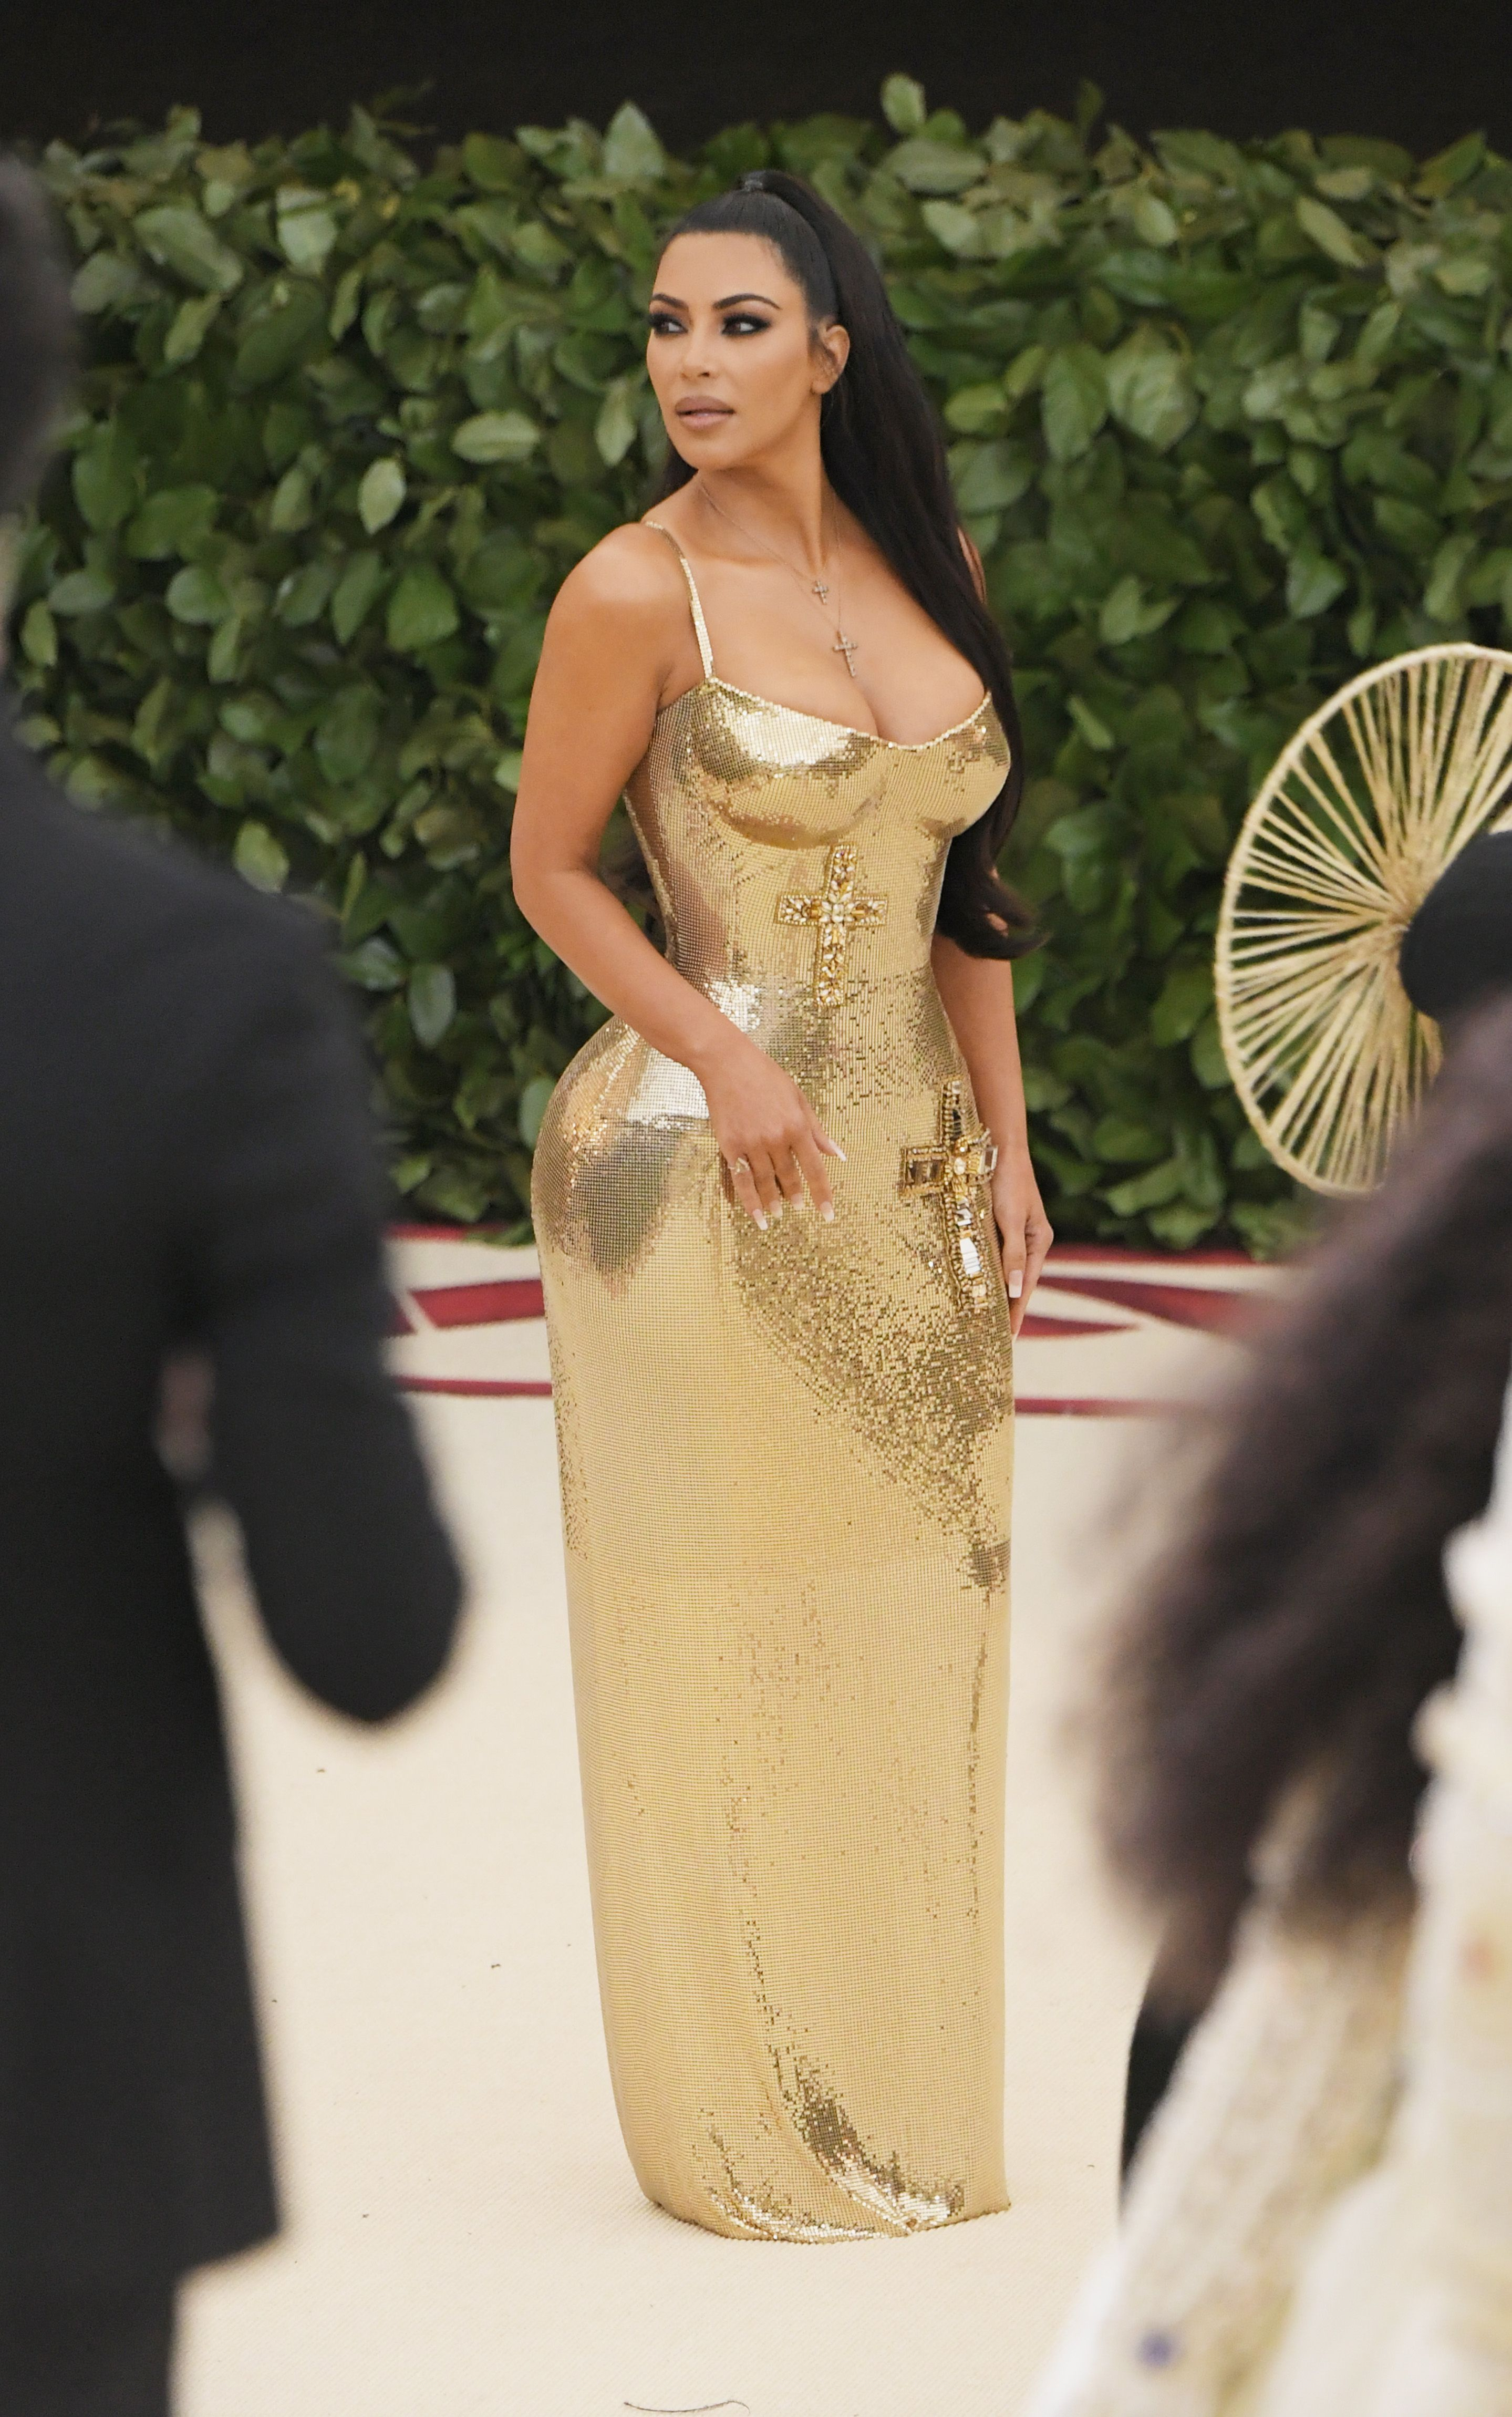 Kim Kardashian Wears Shiny Gold Dress To The Met Gala Kanye Skips Ball